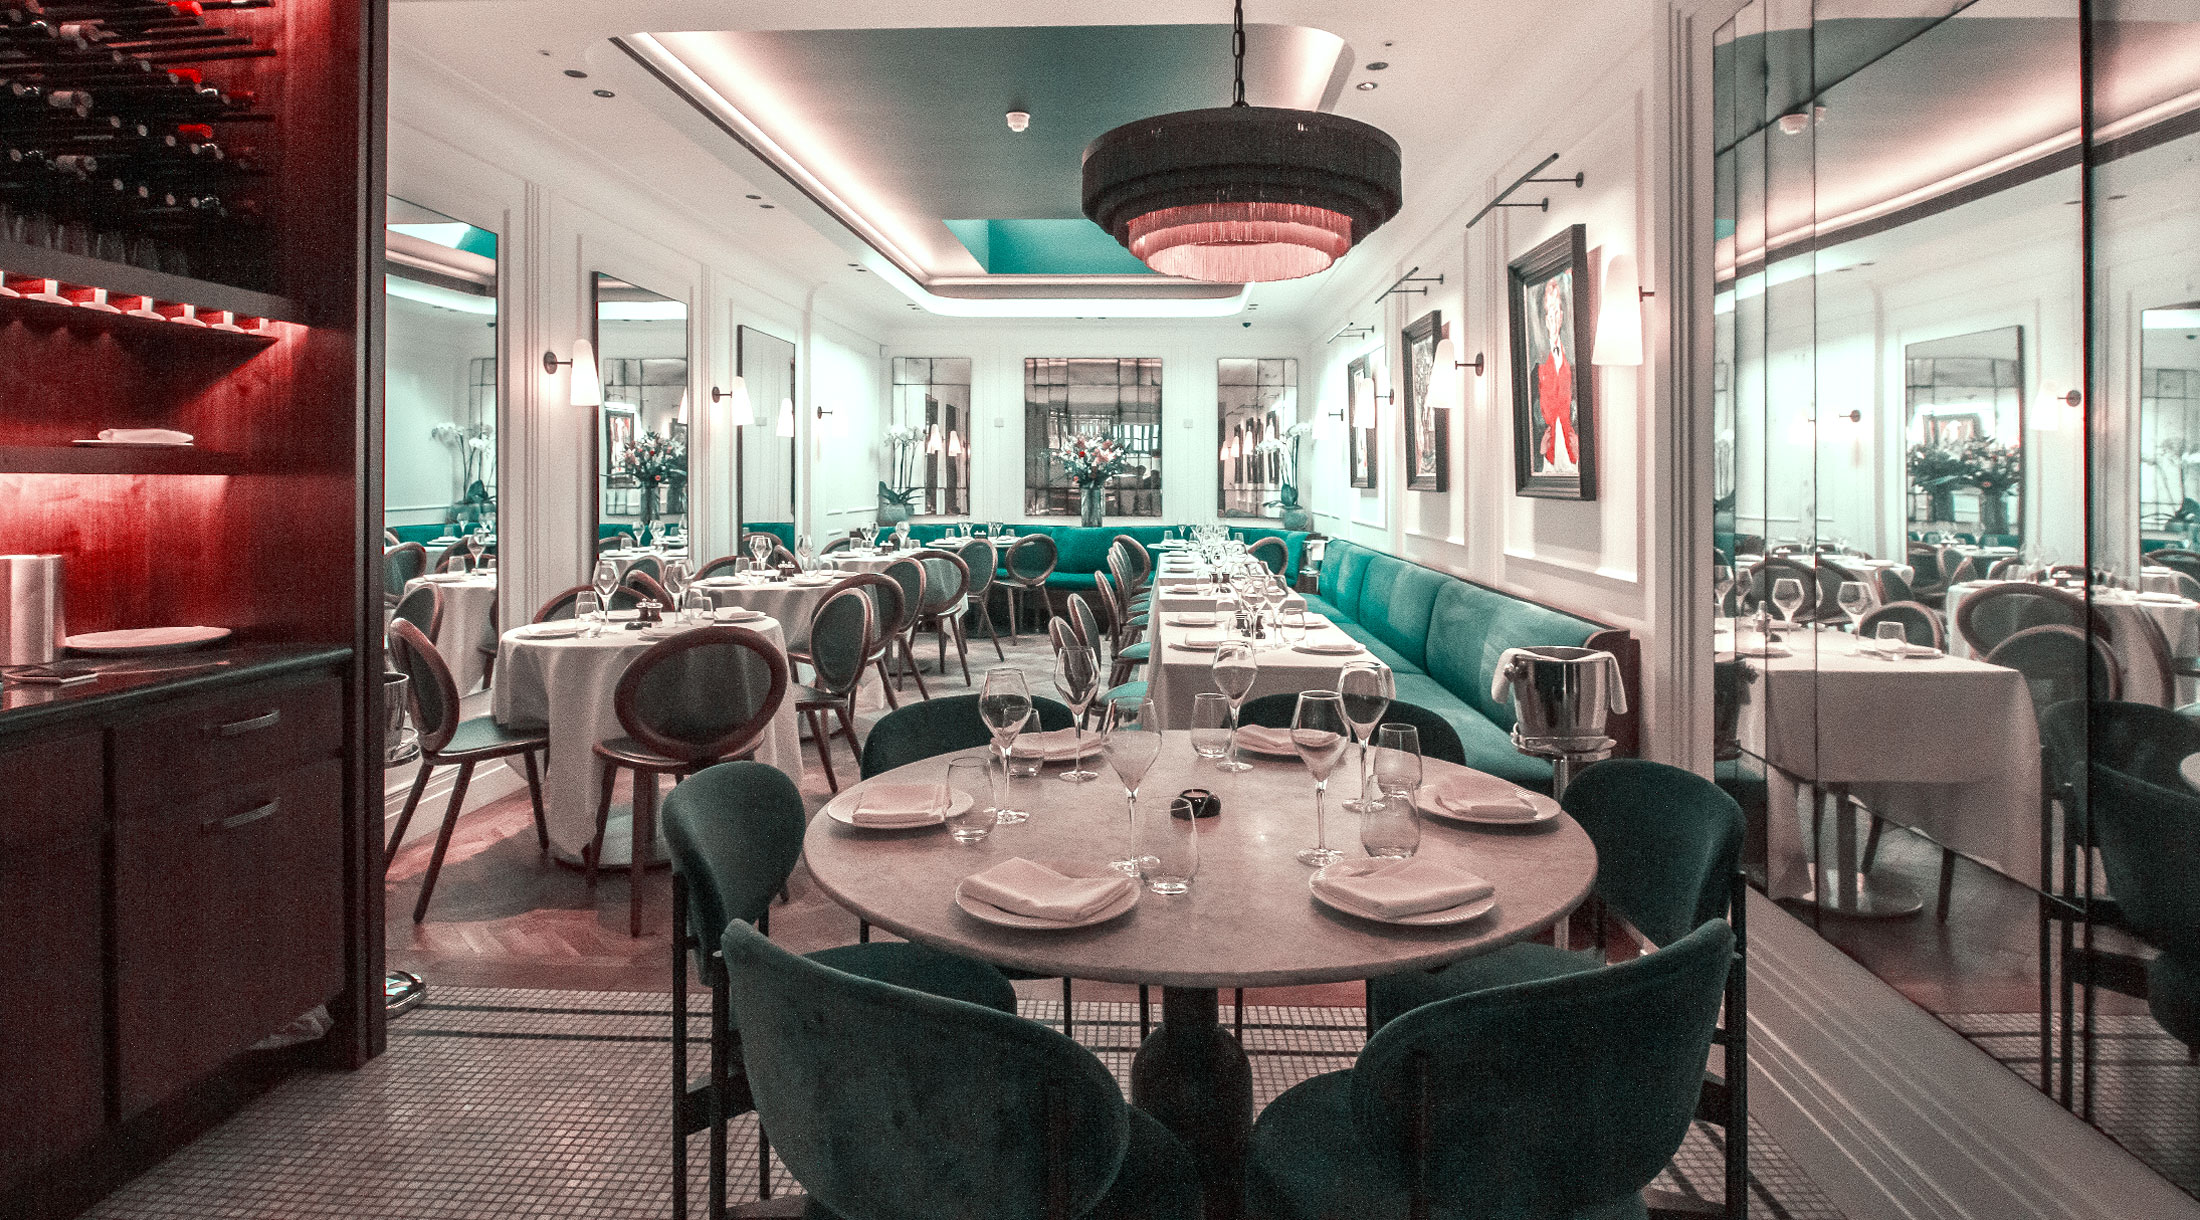 Les Platanes - Contemporary French Bistrot De Luxe in central London.